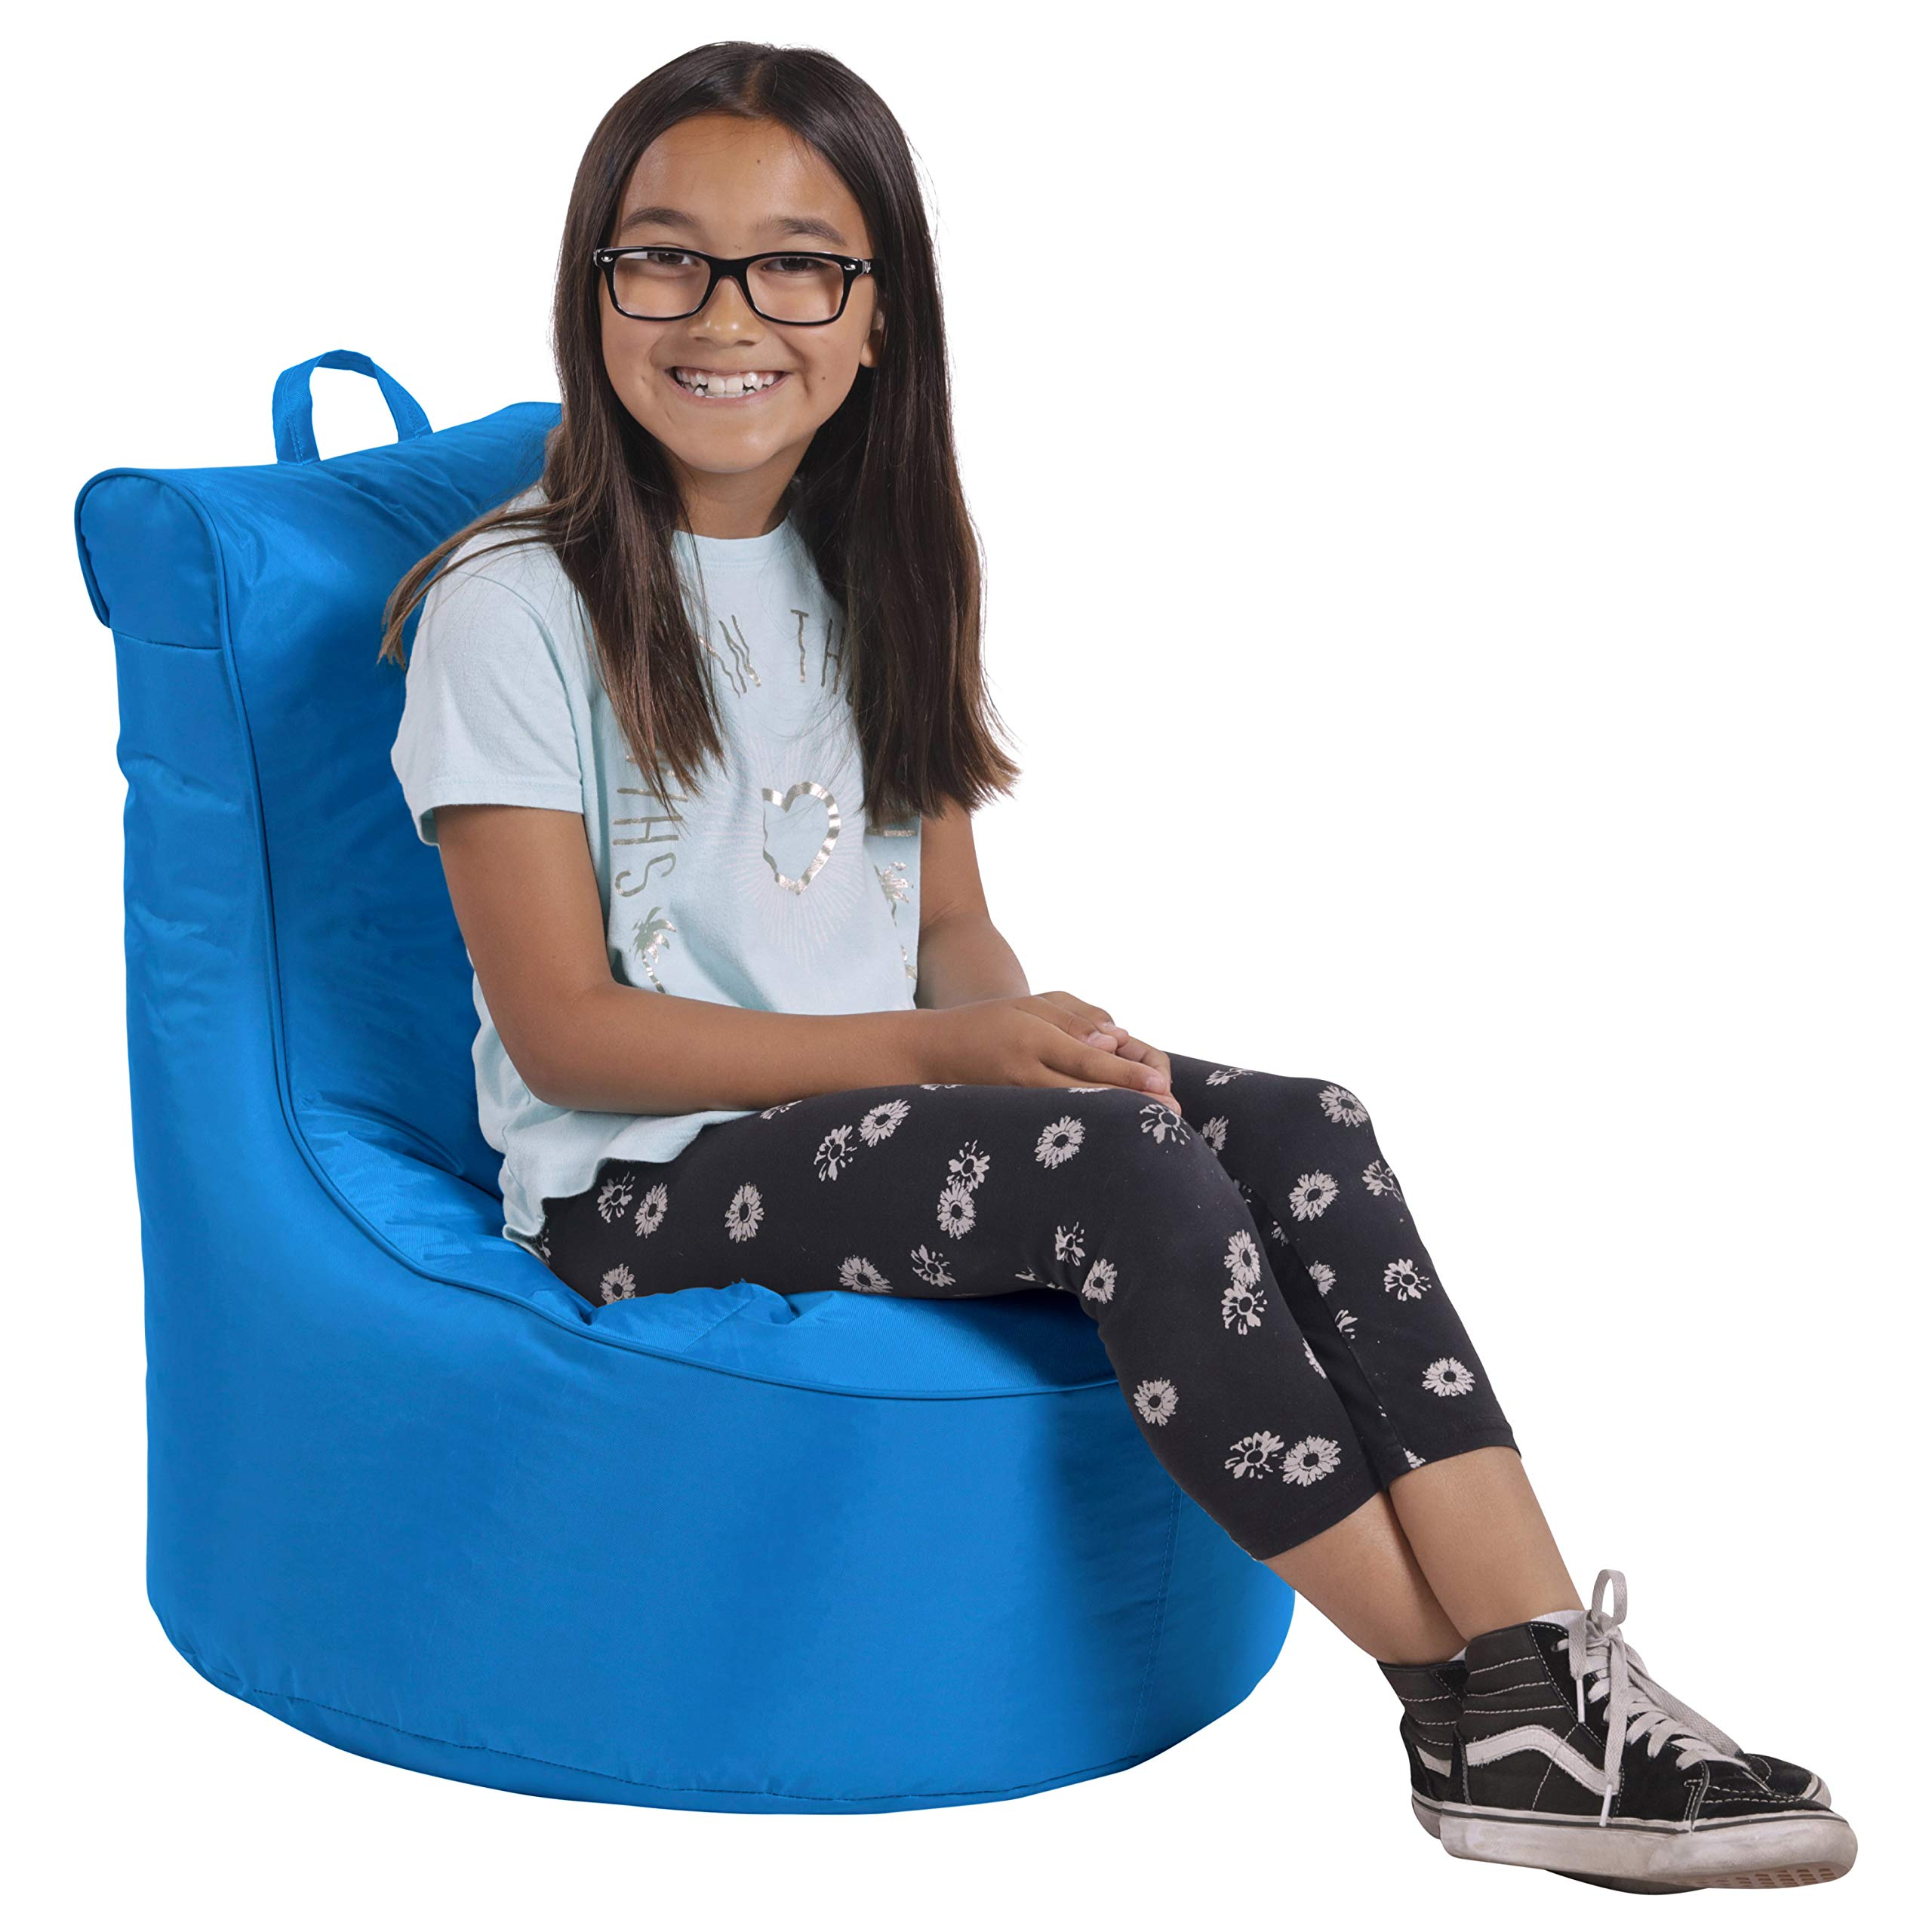 Cali Paddle Out Sack Bean Bag Chair, Dirt-Resistant Coated Oxford Fabric, Flexible Seating for Kids, Teens, Adults, Furniture for Bedrooms, Dorm Rooms, Classrooms - French Blue by Factory Direct Partners